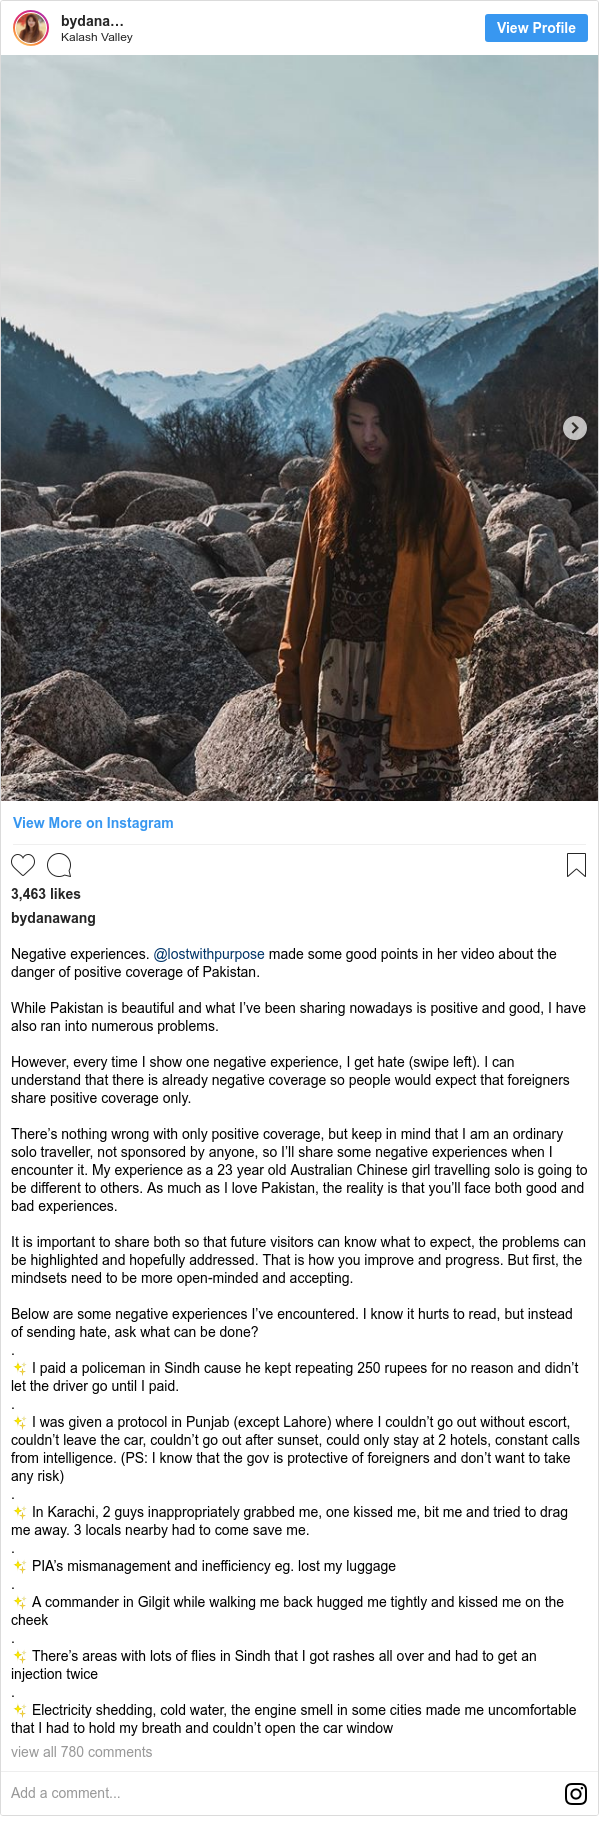 انسٹا گرام پوسٹس bydanawang کے حساب سے: Negative experiences. @lostwithpurpose made some good points in her video about the danger of positive coverage of Pakistan.  While Pakistan is beautiful and what I've been sharing nowadays is positive and good, I have also ran into numerous problems.  However, every time I show one negative experience, I get hate (swipe left). I can understand that there is already negative coverage so people would expect that foreigners share positive coverage only.  There's nothing wrong with only positive coverage, but keep in mind that I am an ordinary solo traveller, not sponsored by anyone, so I'll share some negative experiences when I encounter it. My experience as a 23 year old Australian Chinese girl travelling solo is going to be different to others. As much as I love Pakistan, the reality is that you'll face both good and bad experiences.  It is important to share both so that future visitors can know what to expect, the problems can be highlighted and hopefully addressed. That is how you improve and progress. But first, the mindsets need to be more open-minded and accepting.  Below are some negative experiences I've encountered. I know it hurts to read, but instead of sending hate, ask what can be done? . ✨ I paid a policeman in Sindh cause he kept repeating 250 rupees for no reason and didn't let the driver go until I paid. . ✨ I was given a protocol in Punjab (except Lahore) where I couldn't go out without escort, couldn't leave the car, couldn't go out after sunset, could only stay at 2 hotels, constant calls from intelligence. (PS  I know that the gov is protective of foreigners and don't want to take any risk) . ✨ In Karachi, 2 guys inappropriately grabbed me, one kissed me, bit me and tried to drag me away. 3 locals nearby had to come save me. . ✨ PIA's mismanagement and inefficiency eg. lost my luggage . ✨ A commander in Gilgit while walking me back hugged me tightly and kissed me on the cheek . ✨ There's areas with lots of flies in Sindh that I got rashes all over and had to get an injection twice . ✨ Electricity shedding, cold water, the engine smell in some cities made me uncomfortable that I had to hold my breath and couldn't open the car window